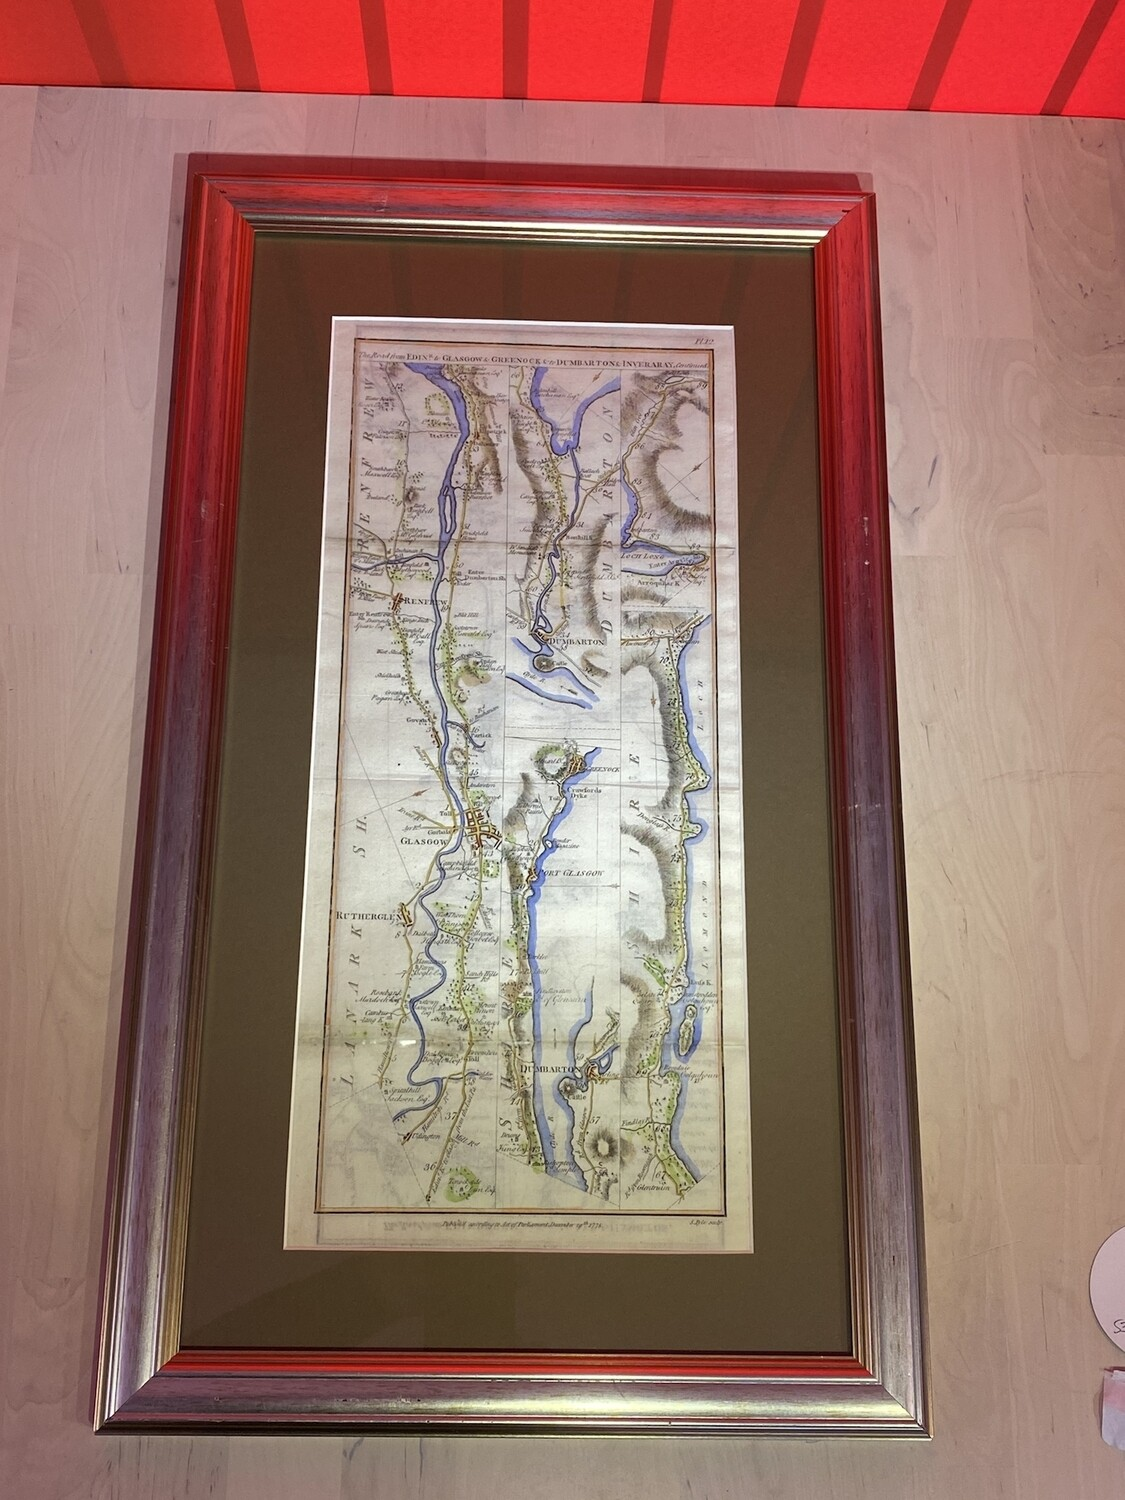 Framed Maps of Local Areas - As of 1700's